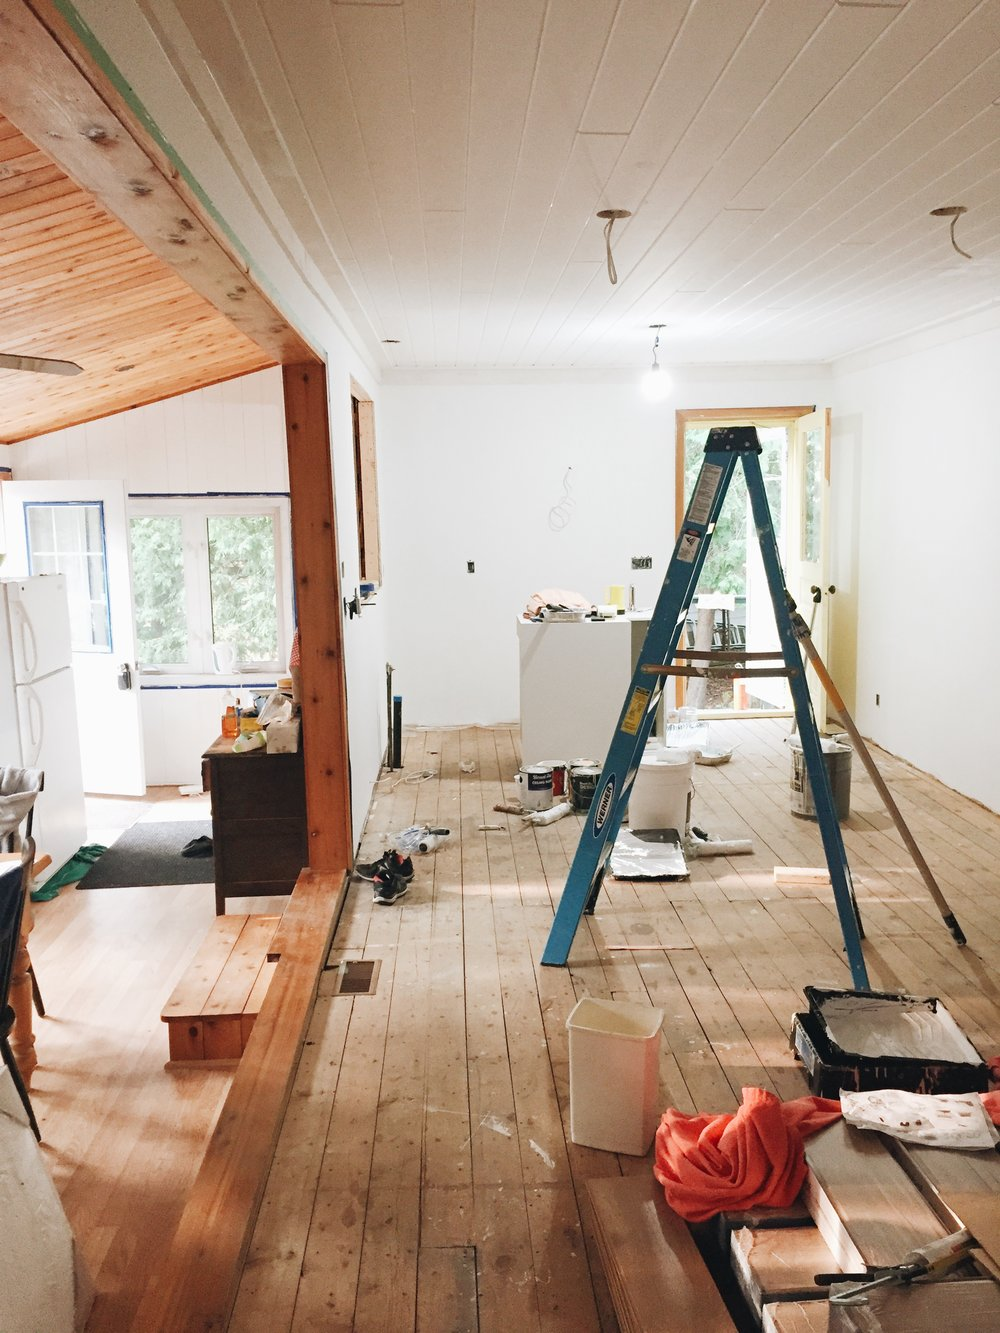 The new drywall is up and painted (Beauti-Tone's 'Here Comes the Bride'), and the opening over the sink has been enlarged! Ceiling are planked and painted.